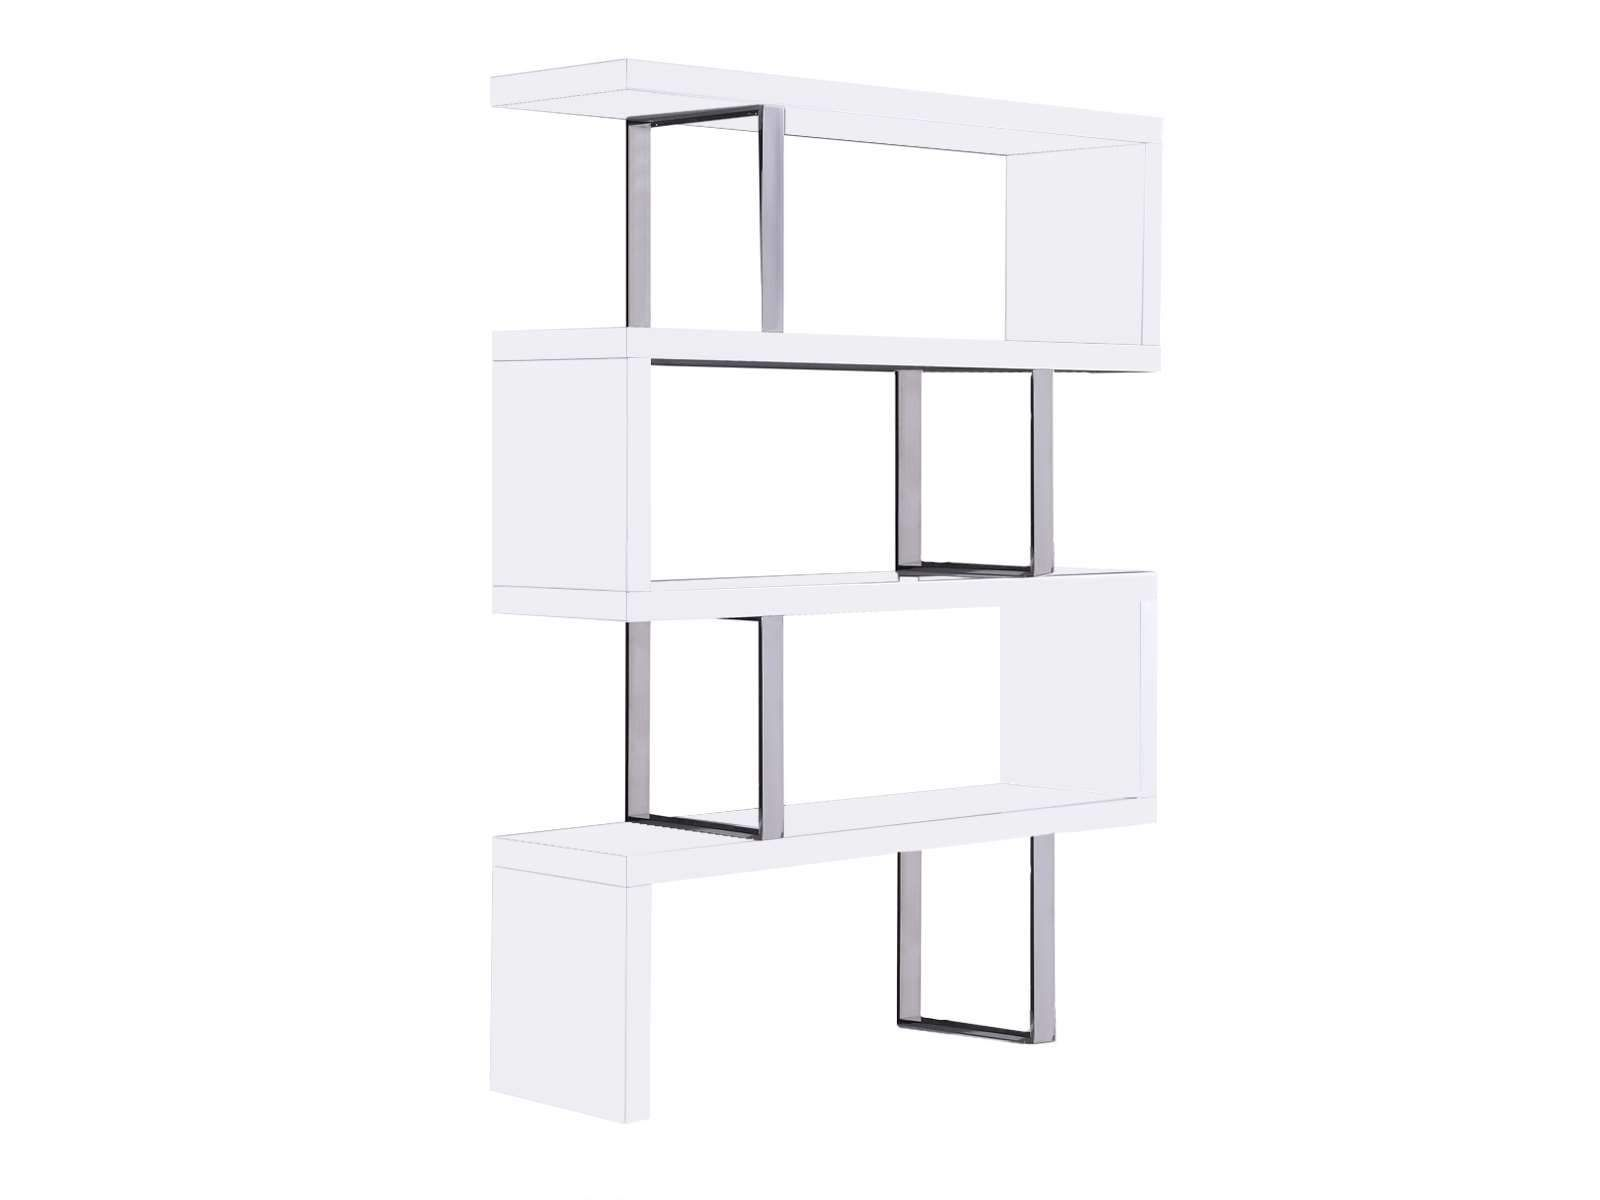 High Gloss White Lacquer Bookcase